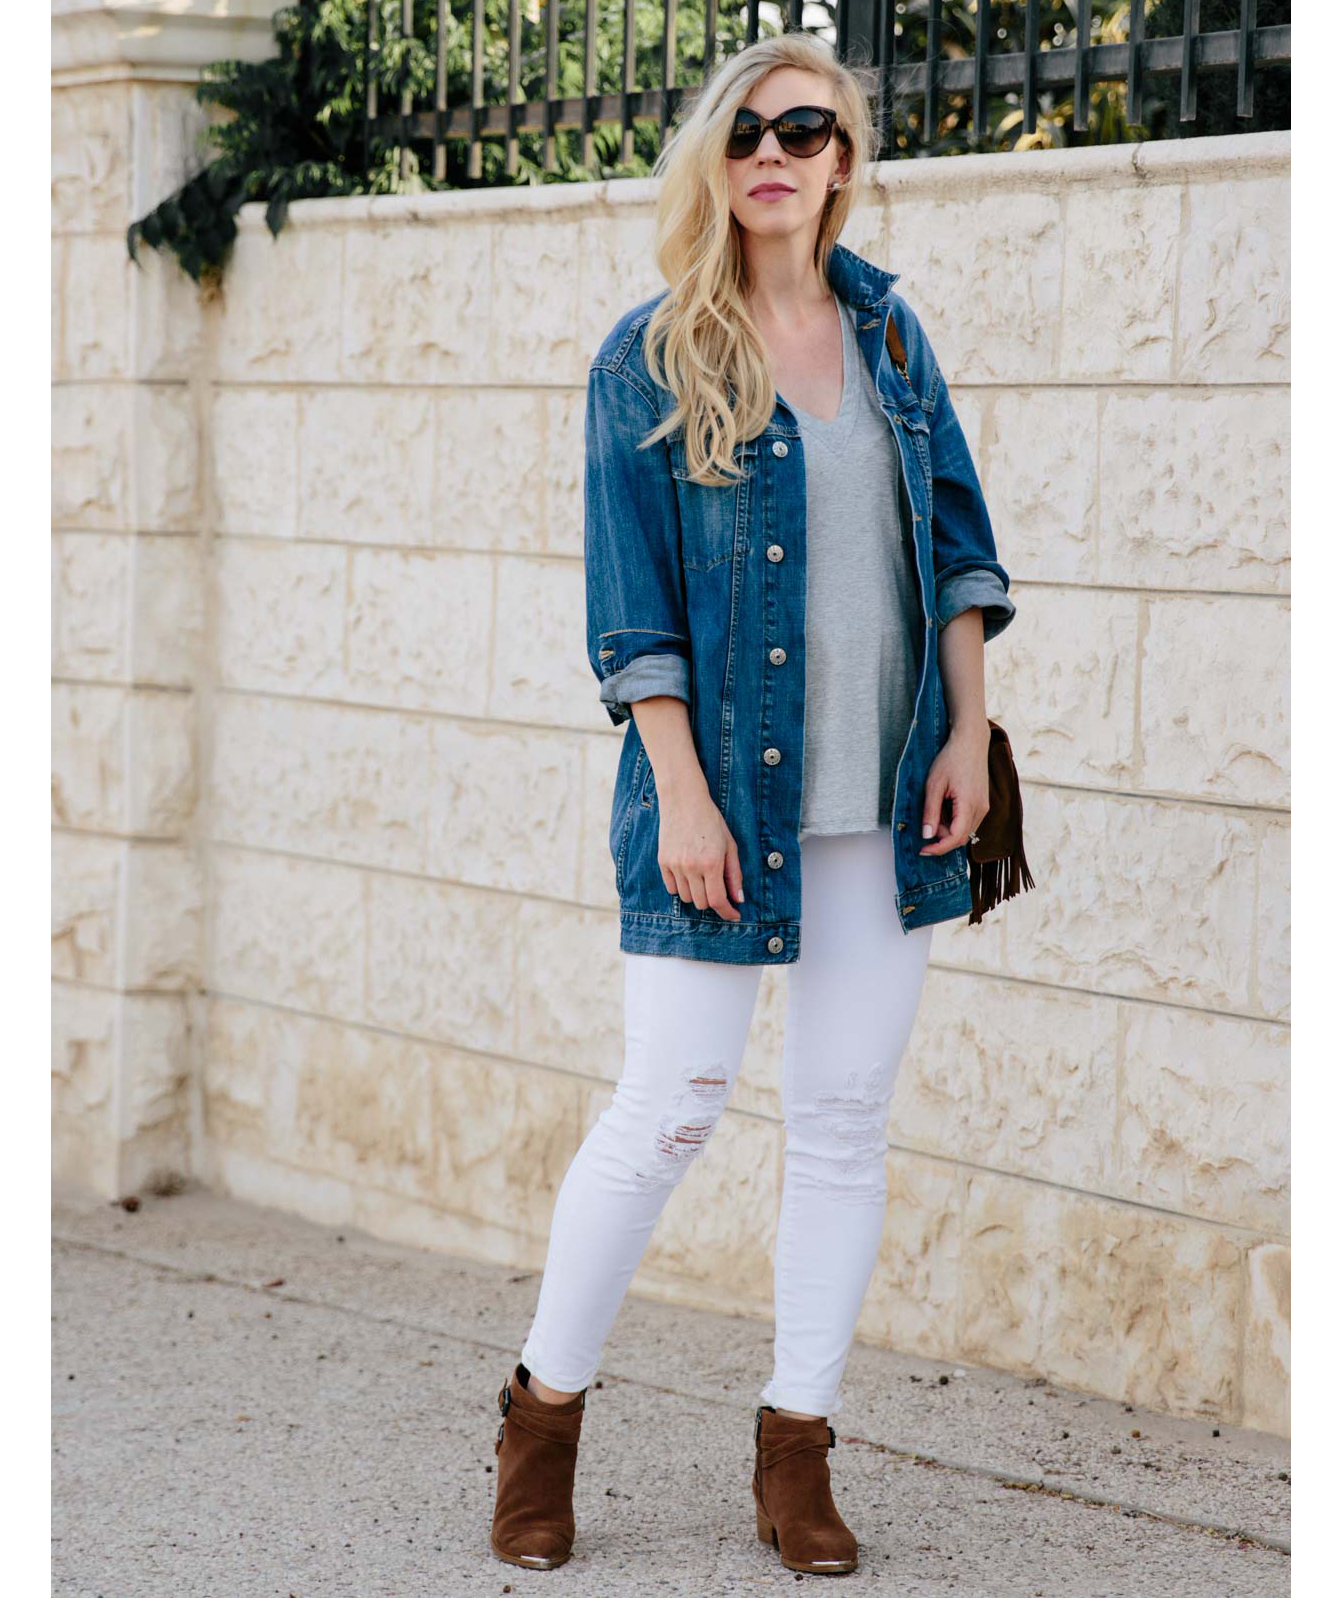 Woman wearing oversized jean jacket with white jeans